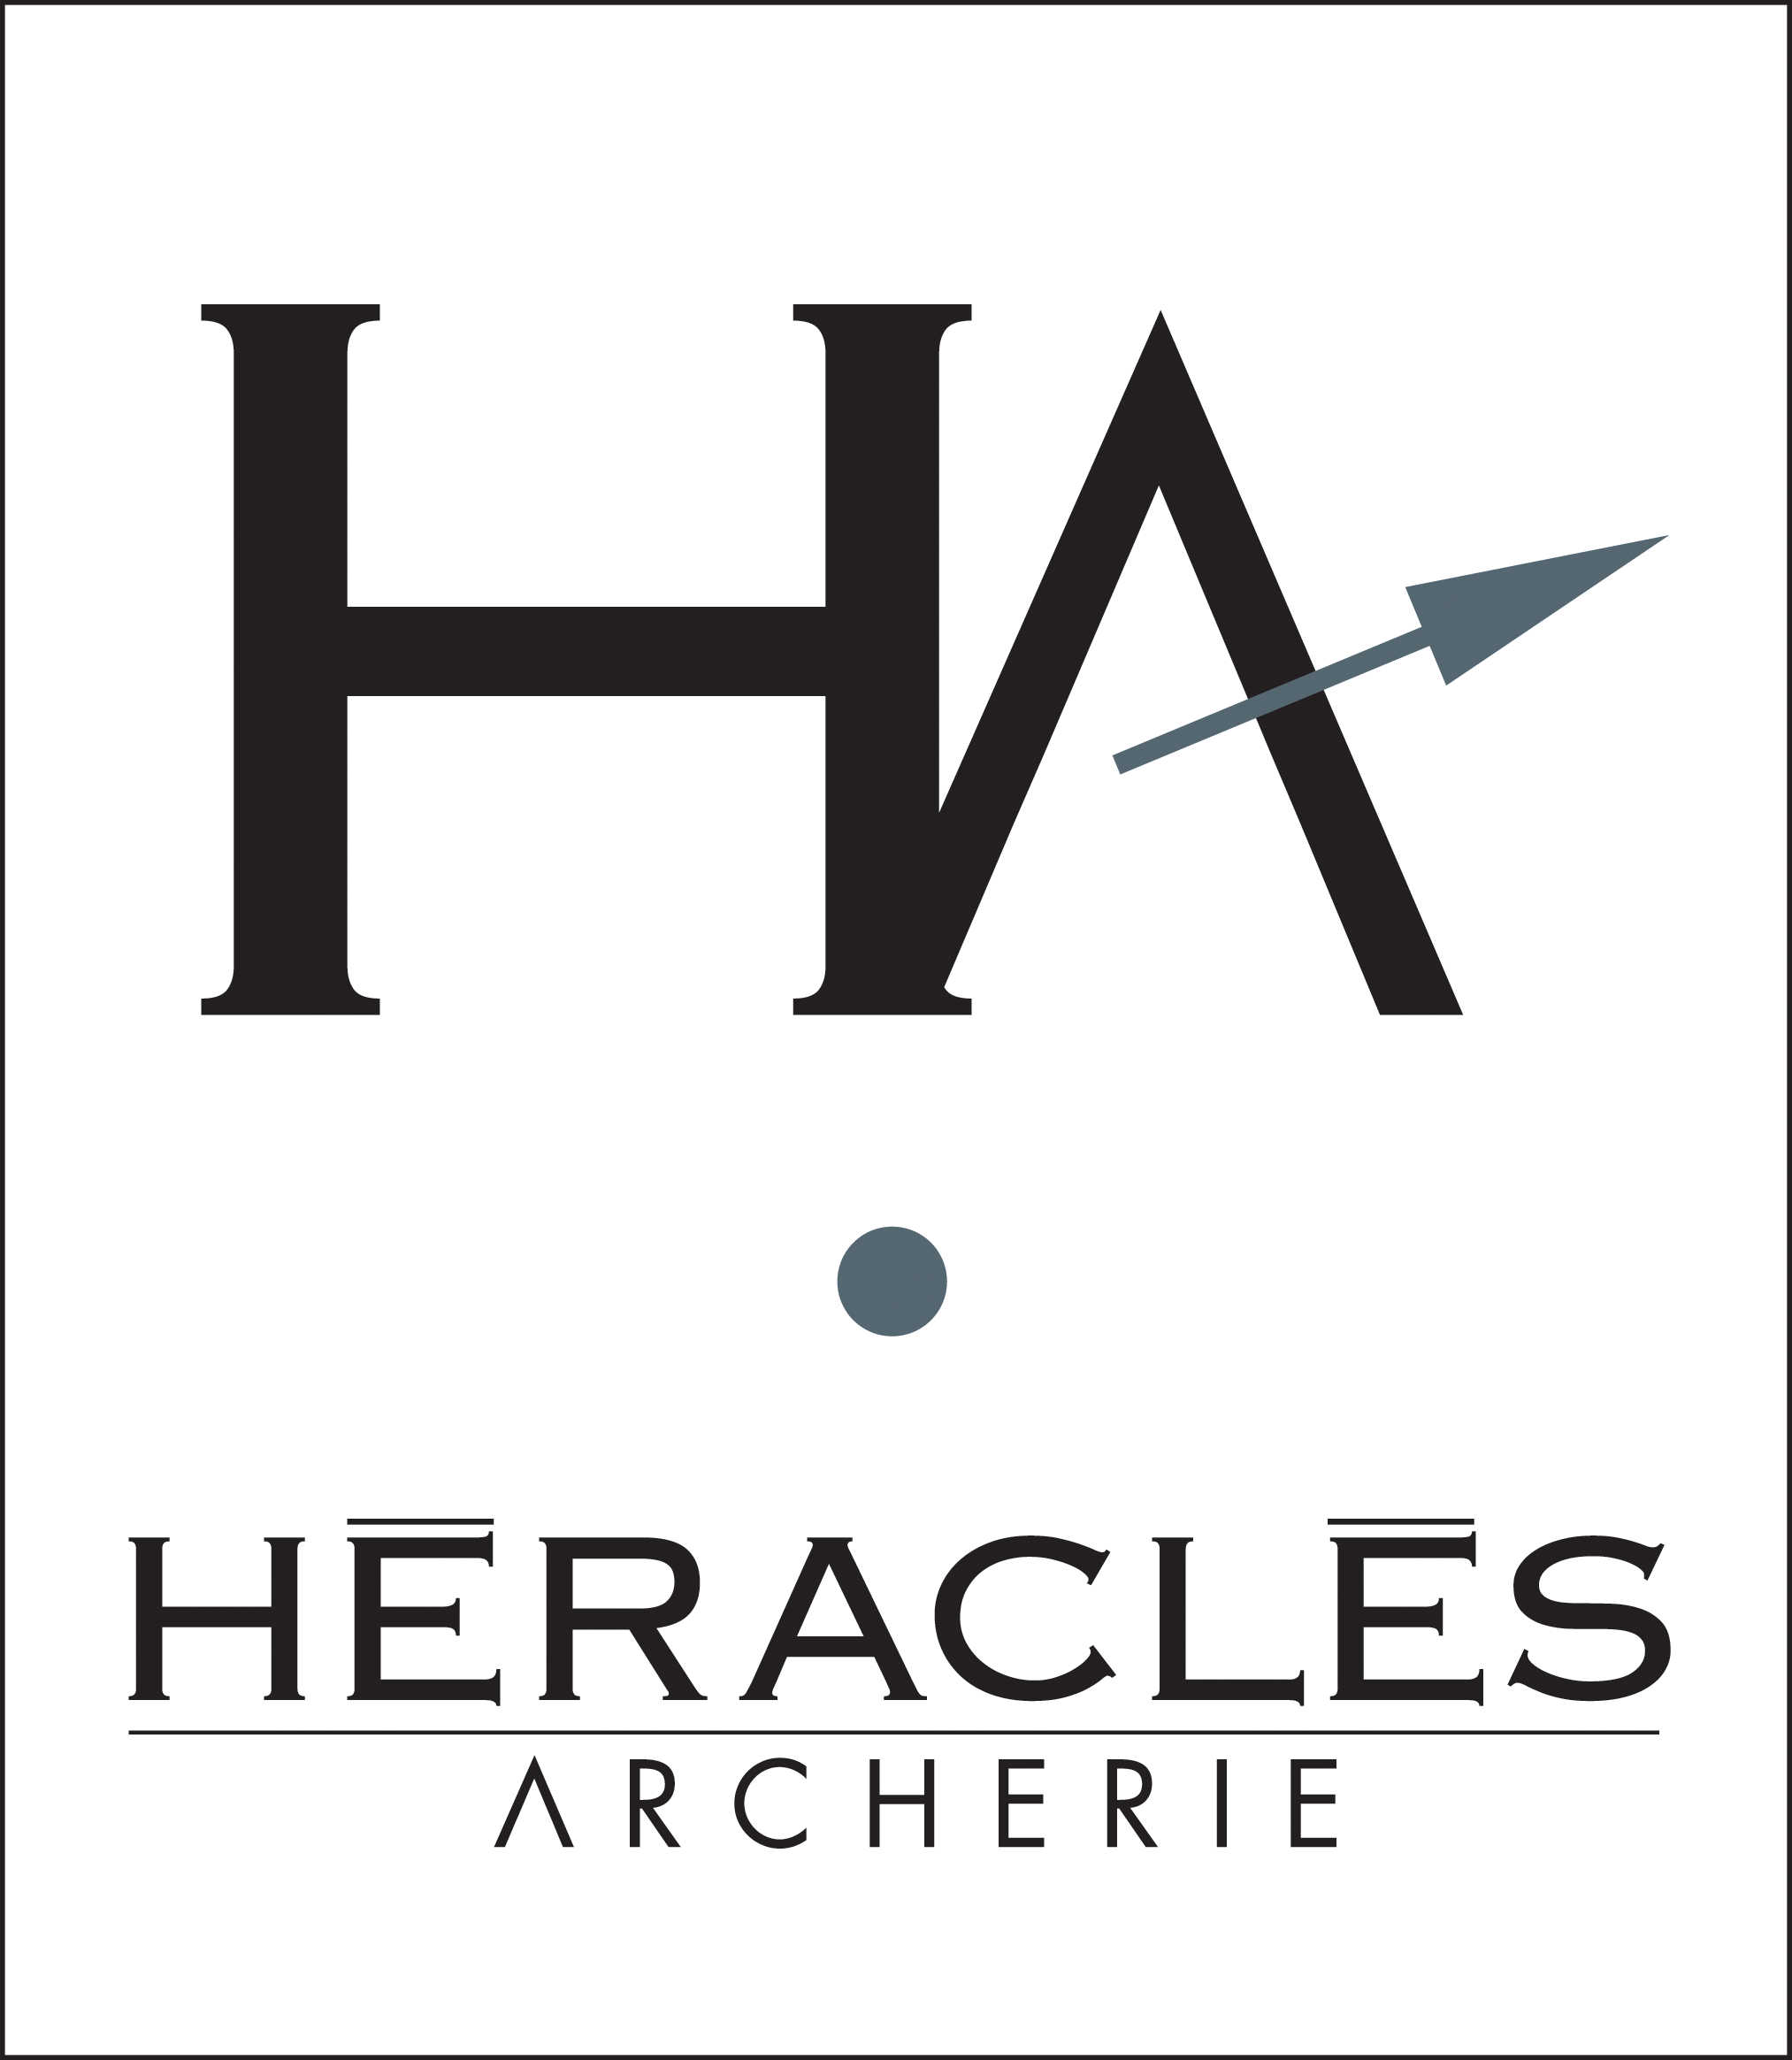 HERACLES_WEB.jpg